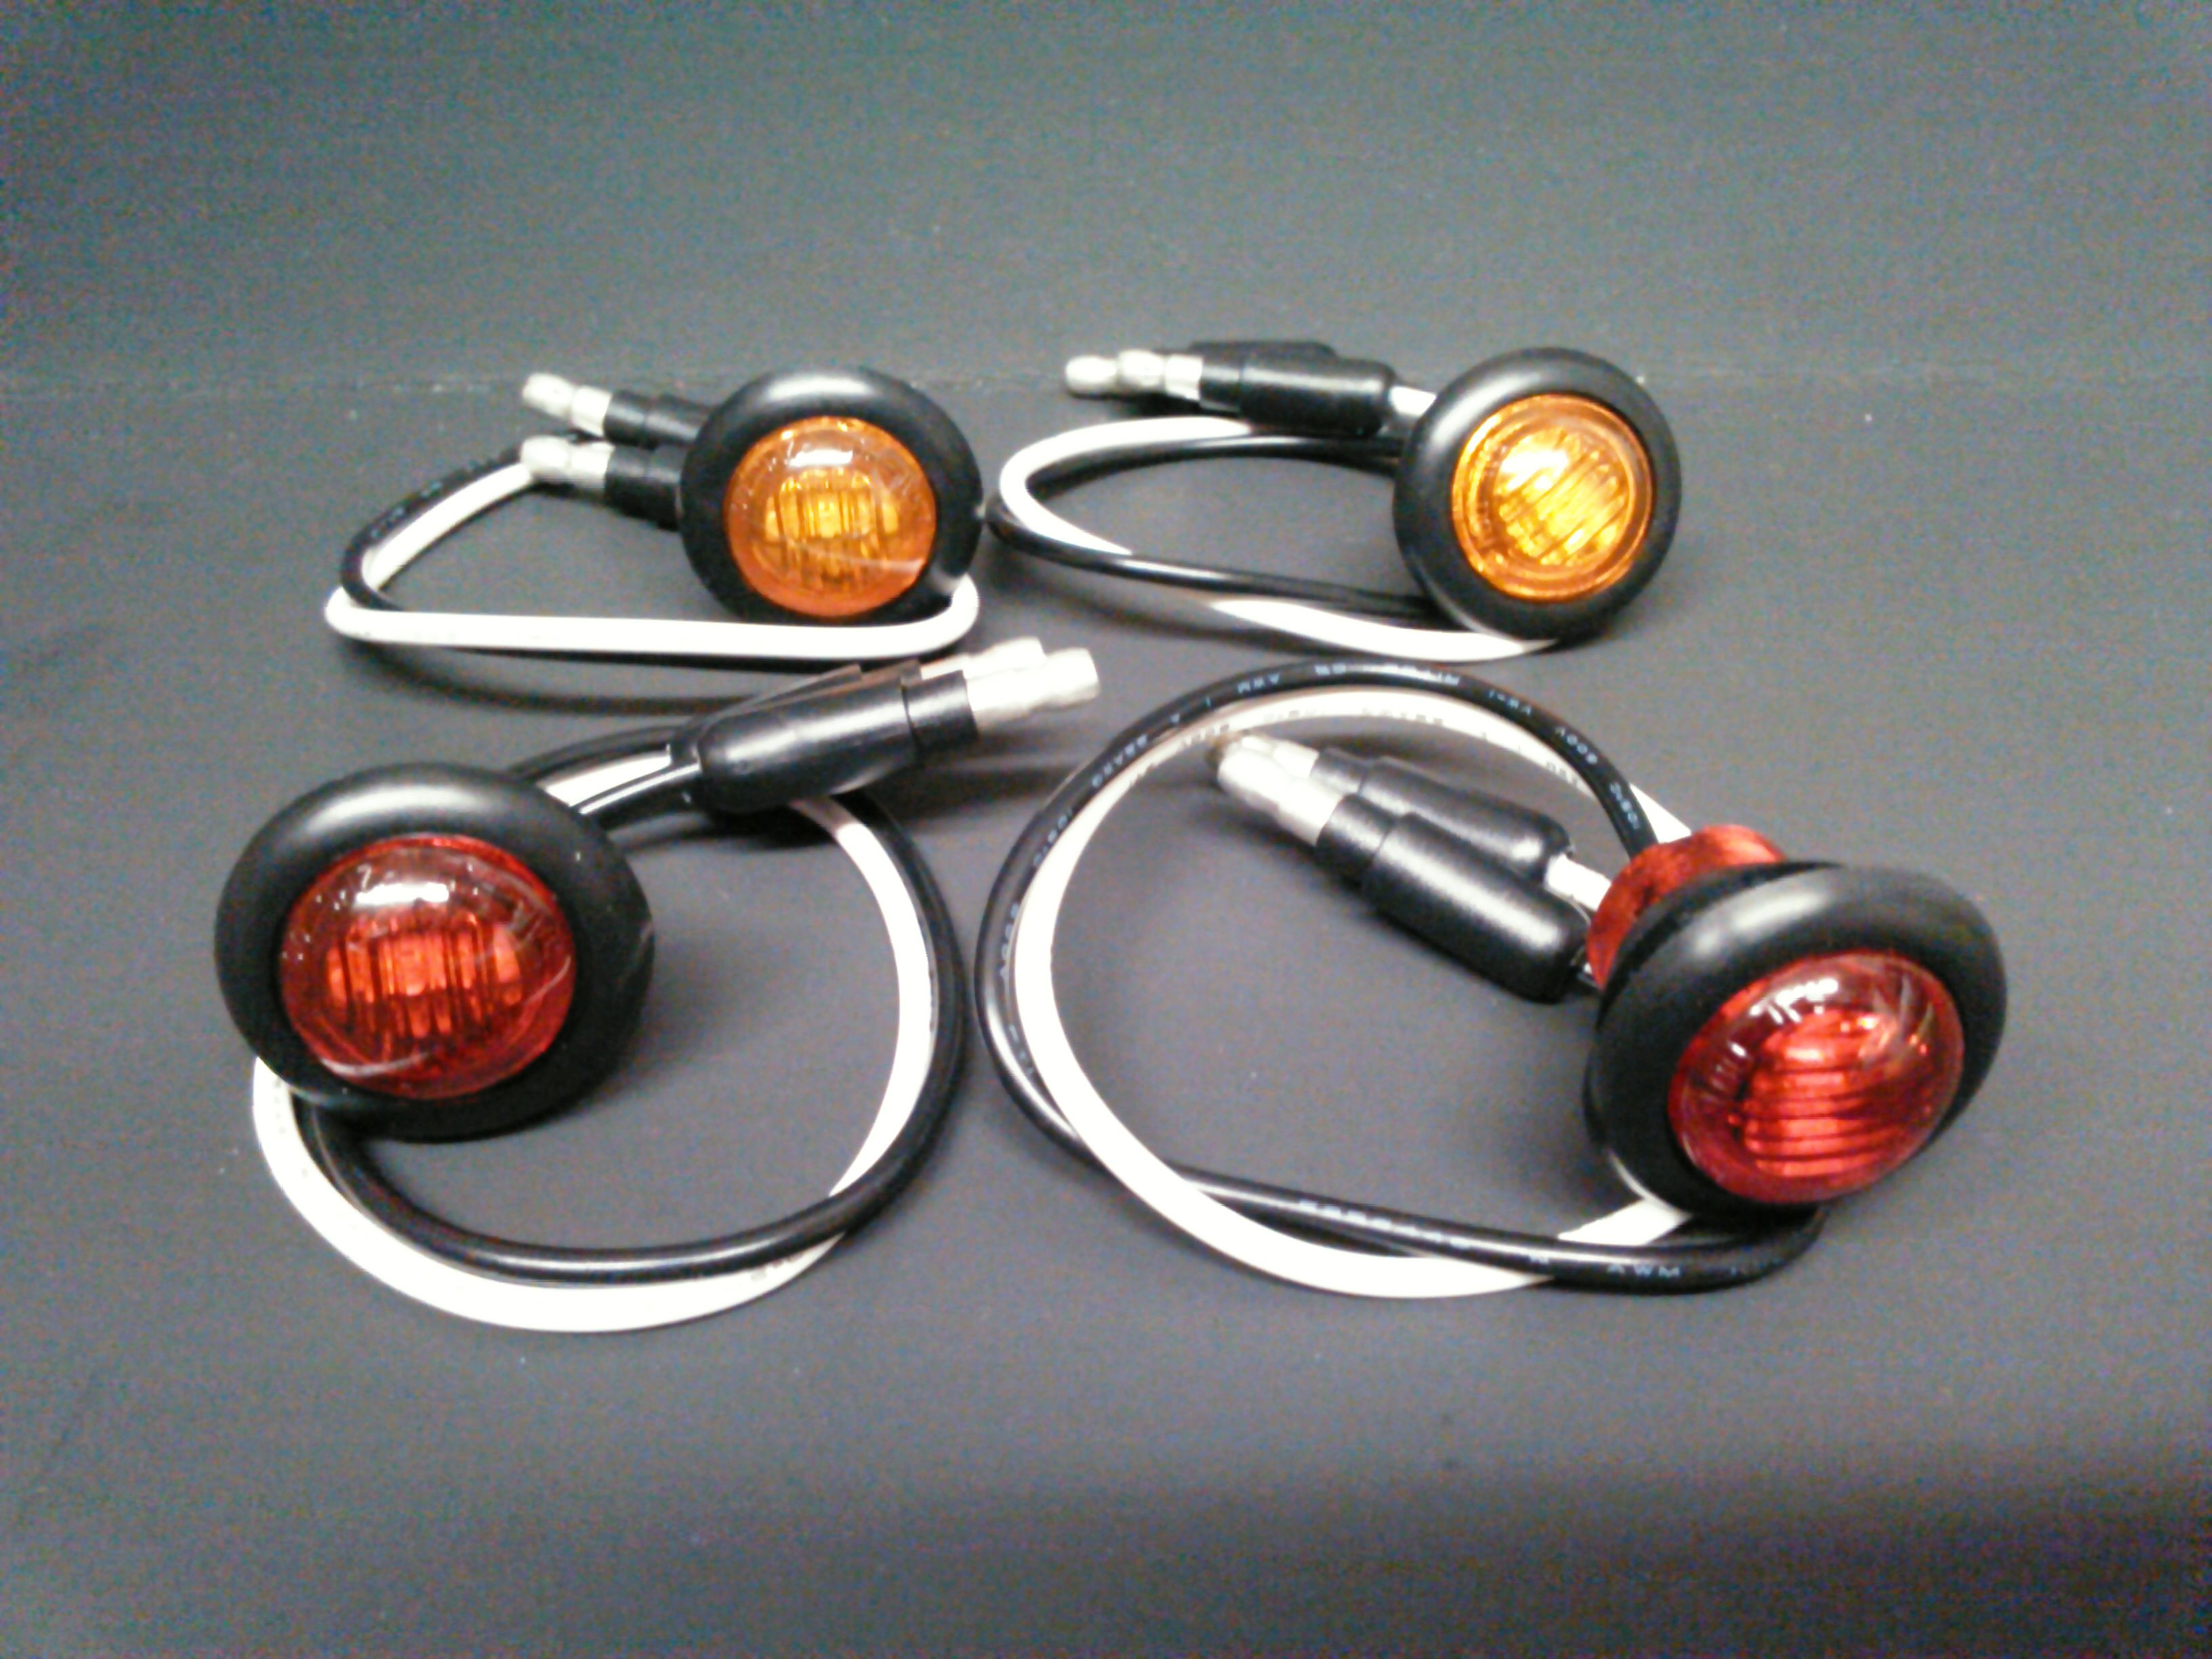 LED Turn Signal Lights for your SXS, UTV, ATV. Wiring diagrams for the